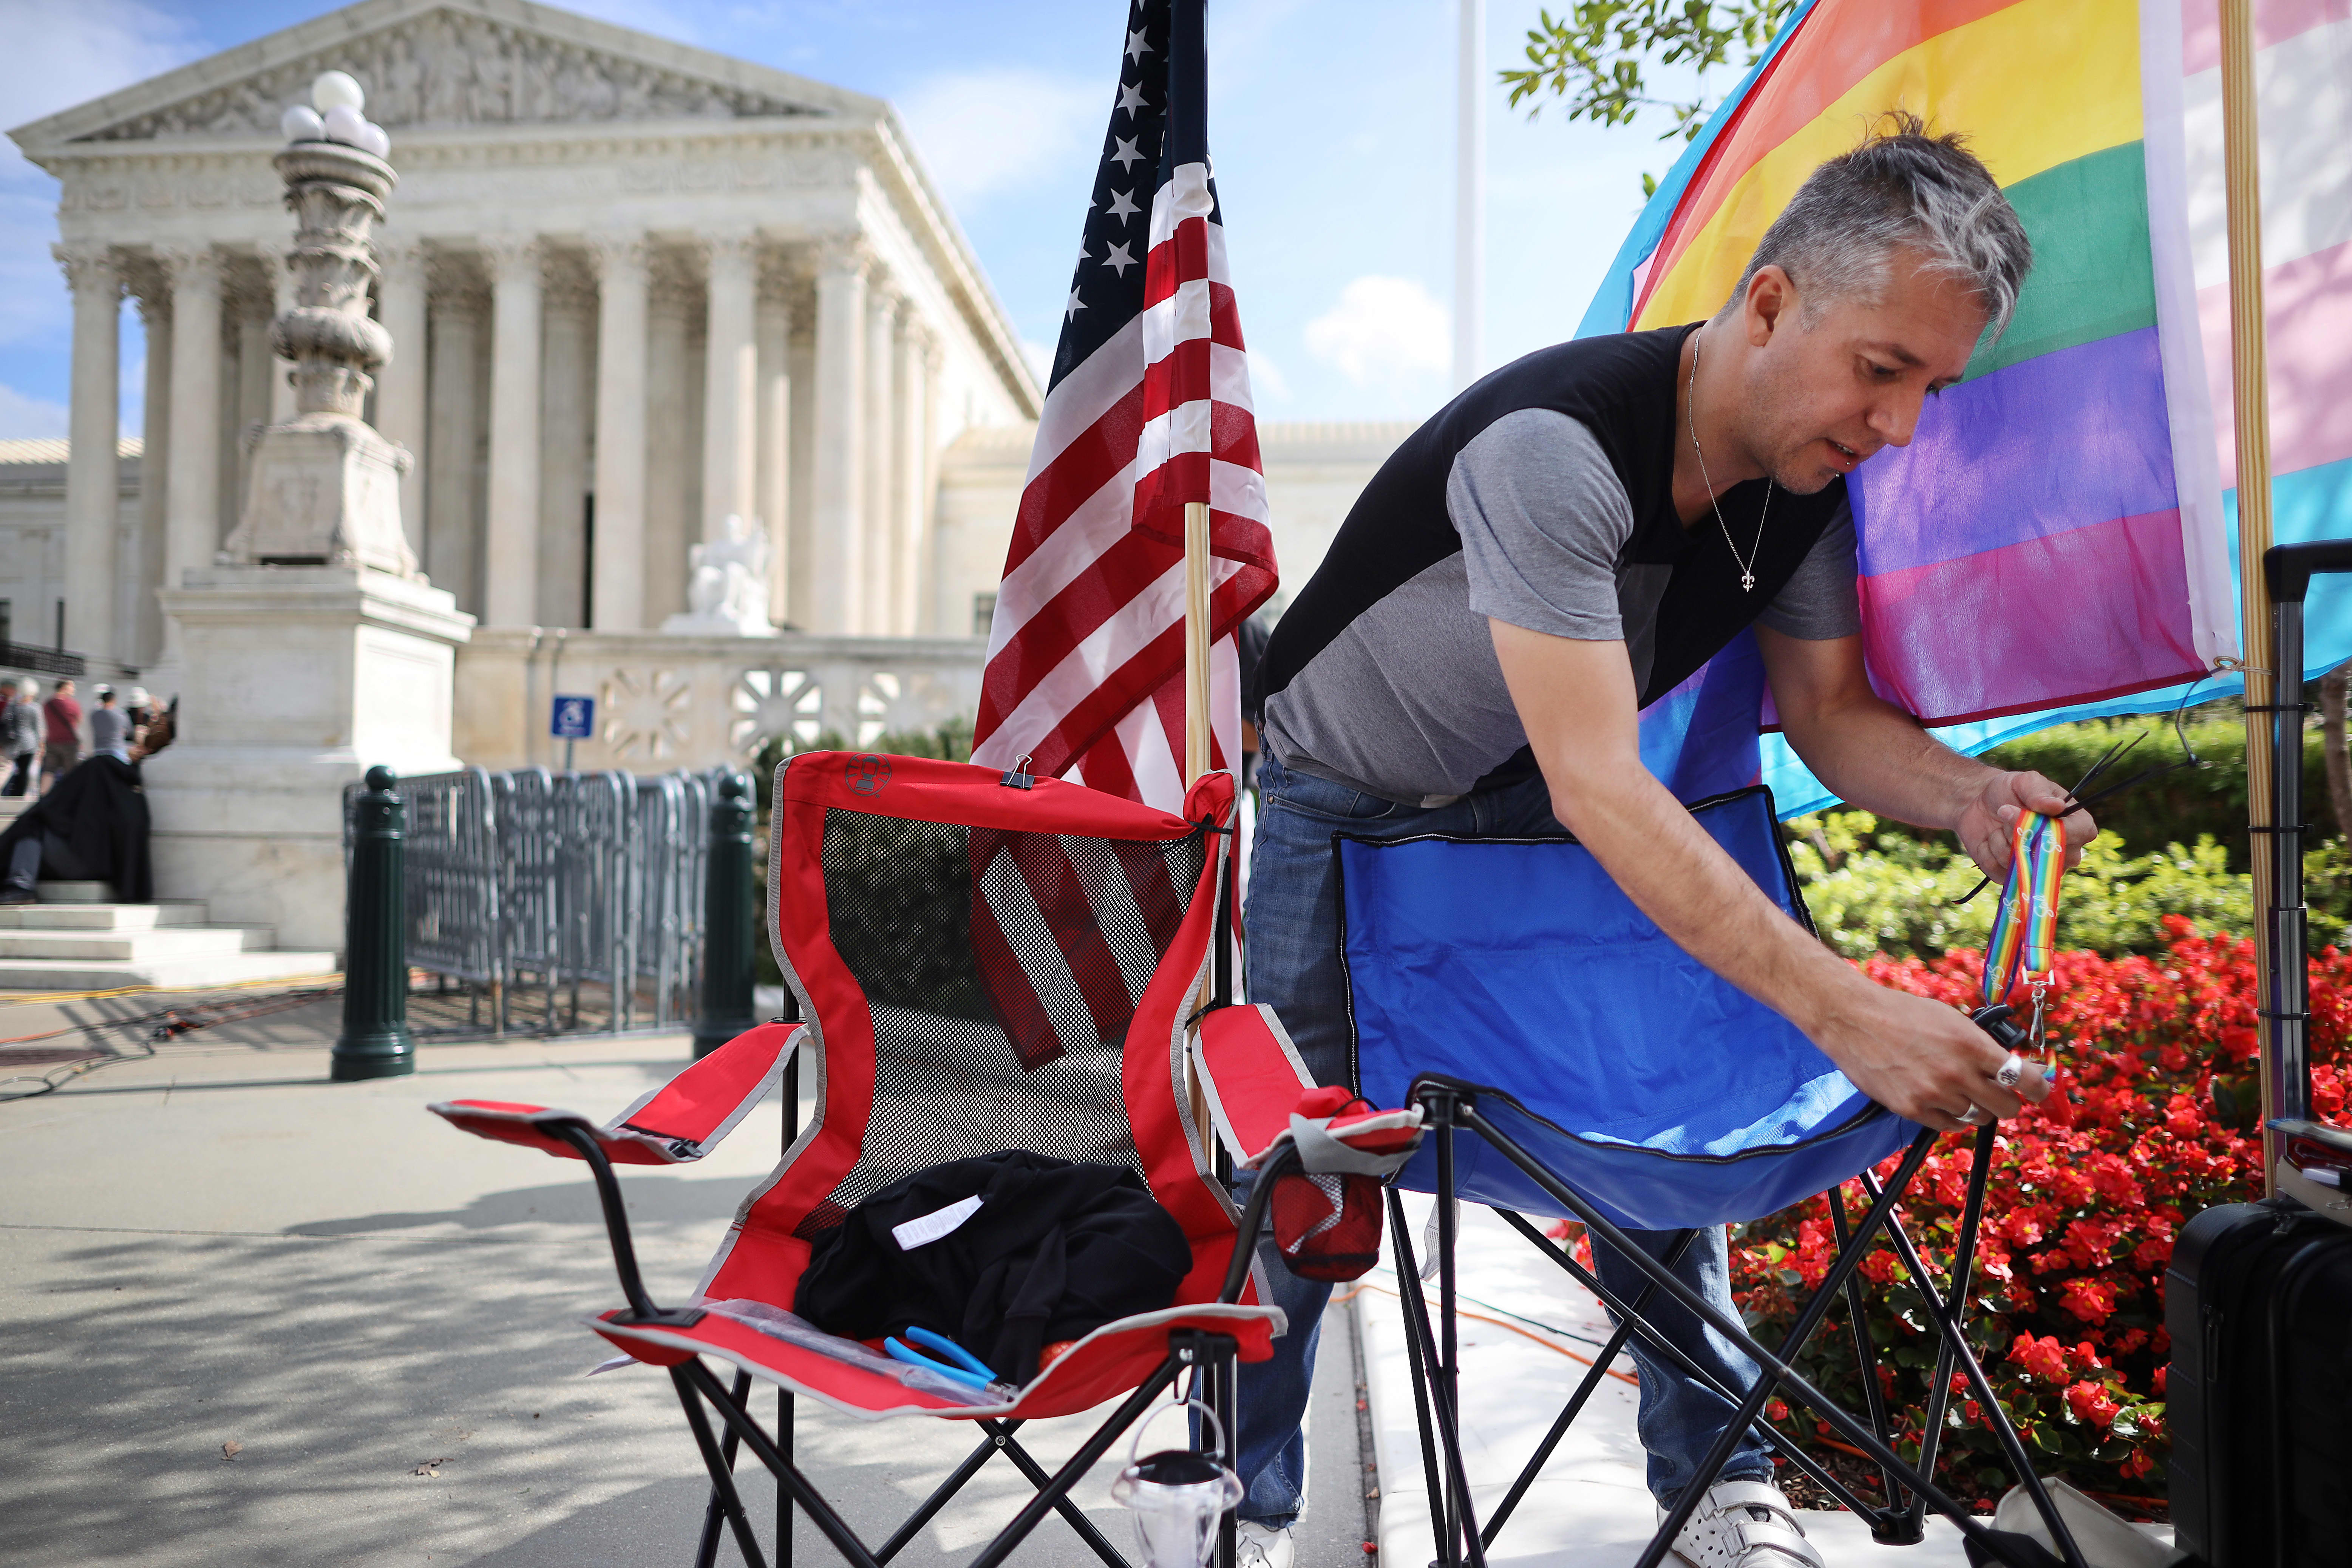 Supreme Court clashes over meaning of 'sex' in LGBT discrimination cases